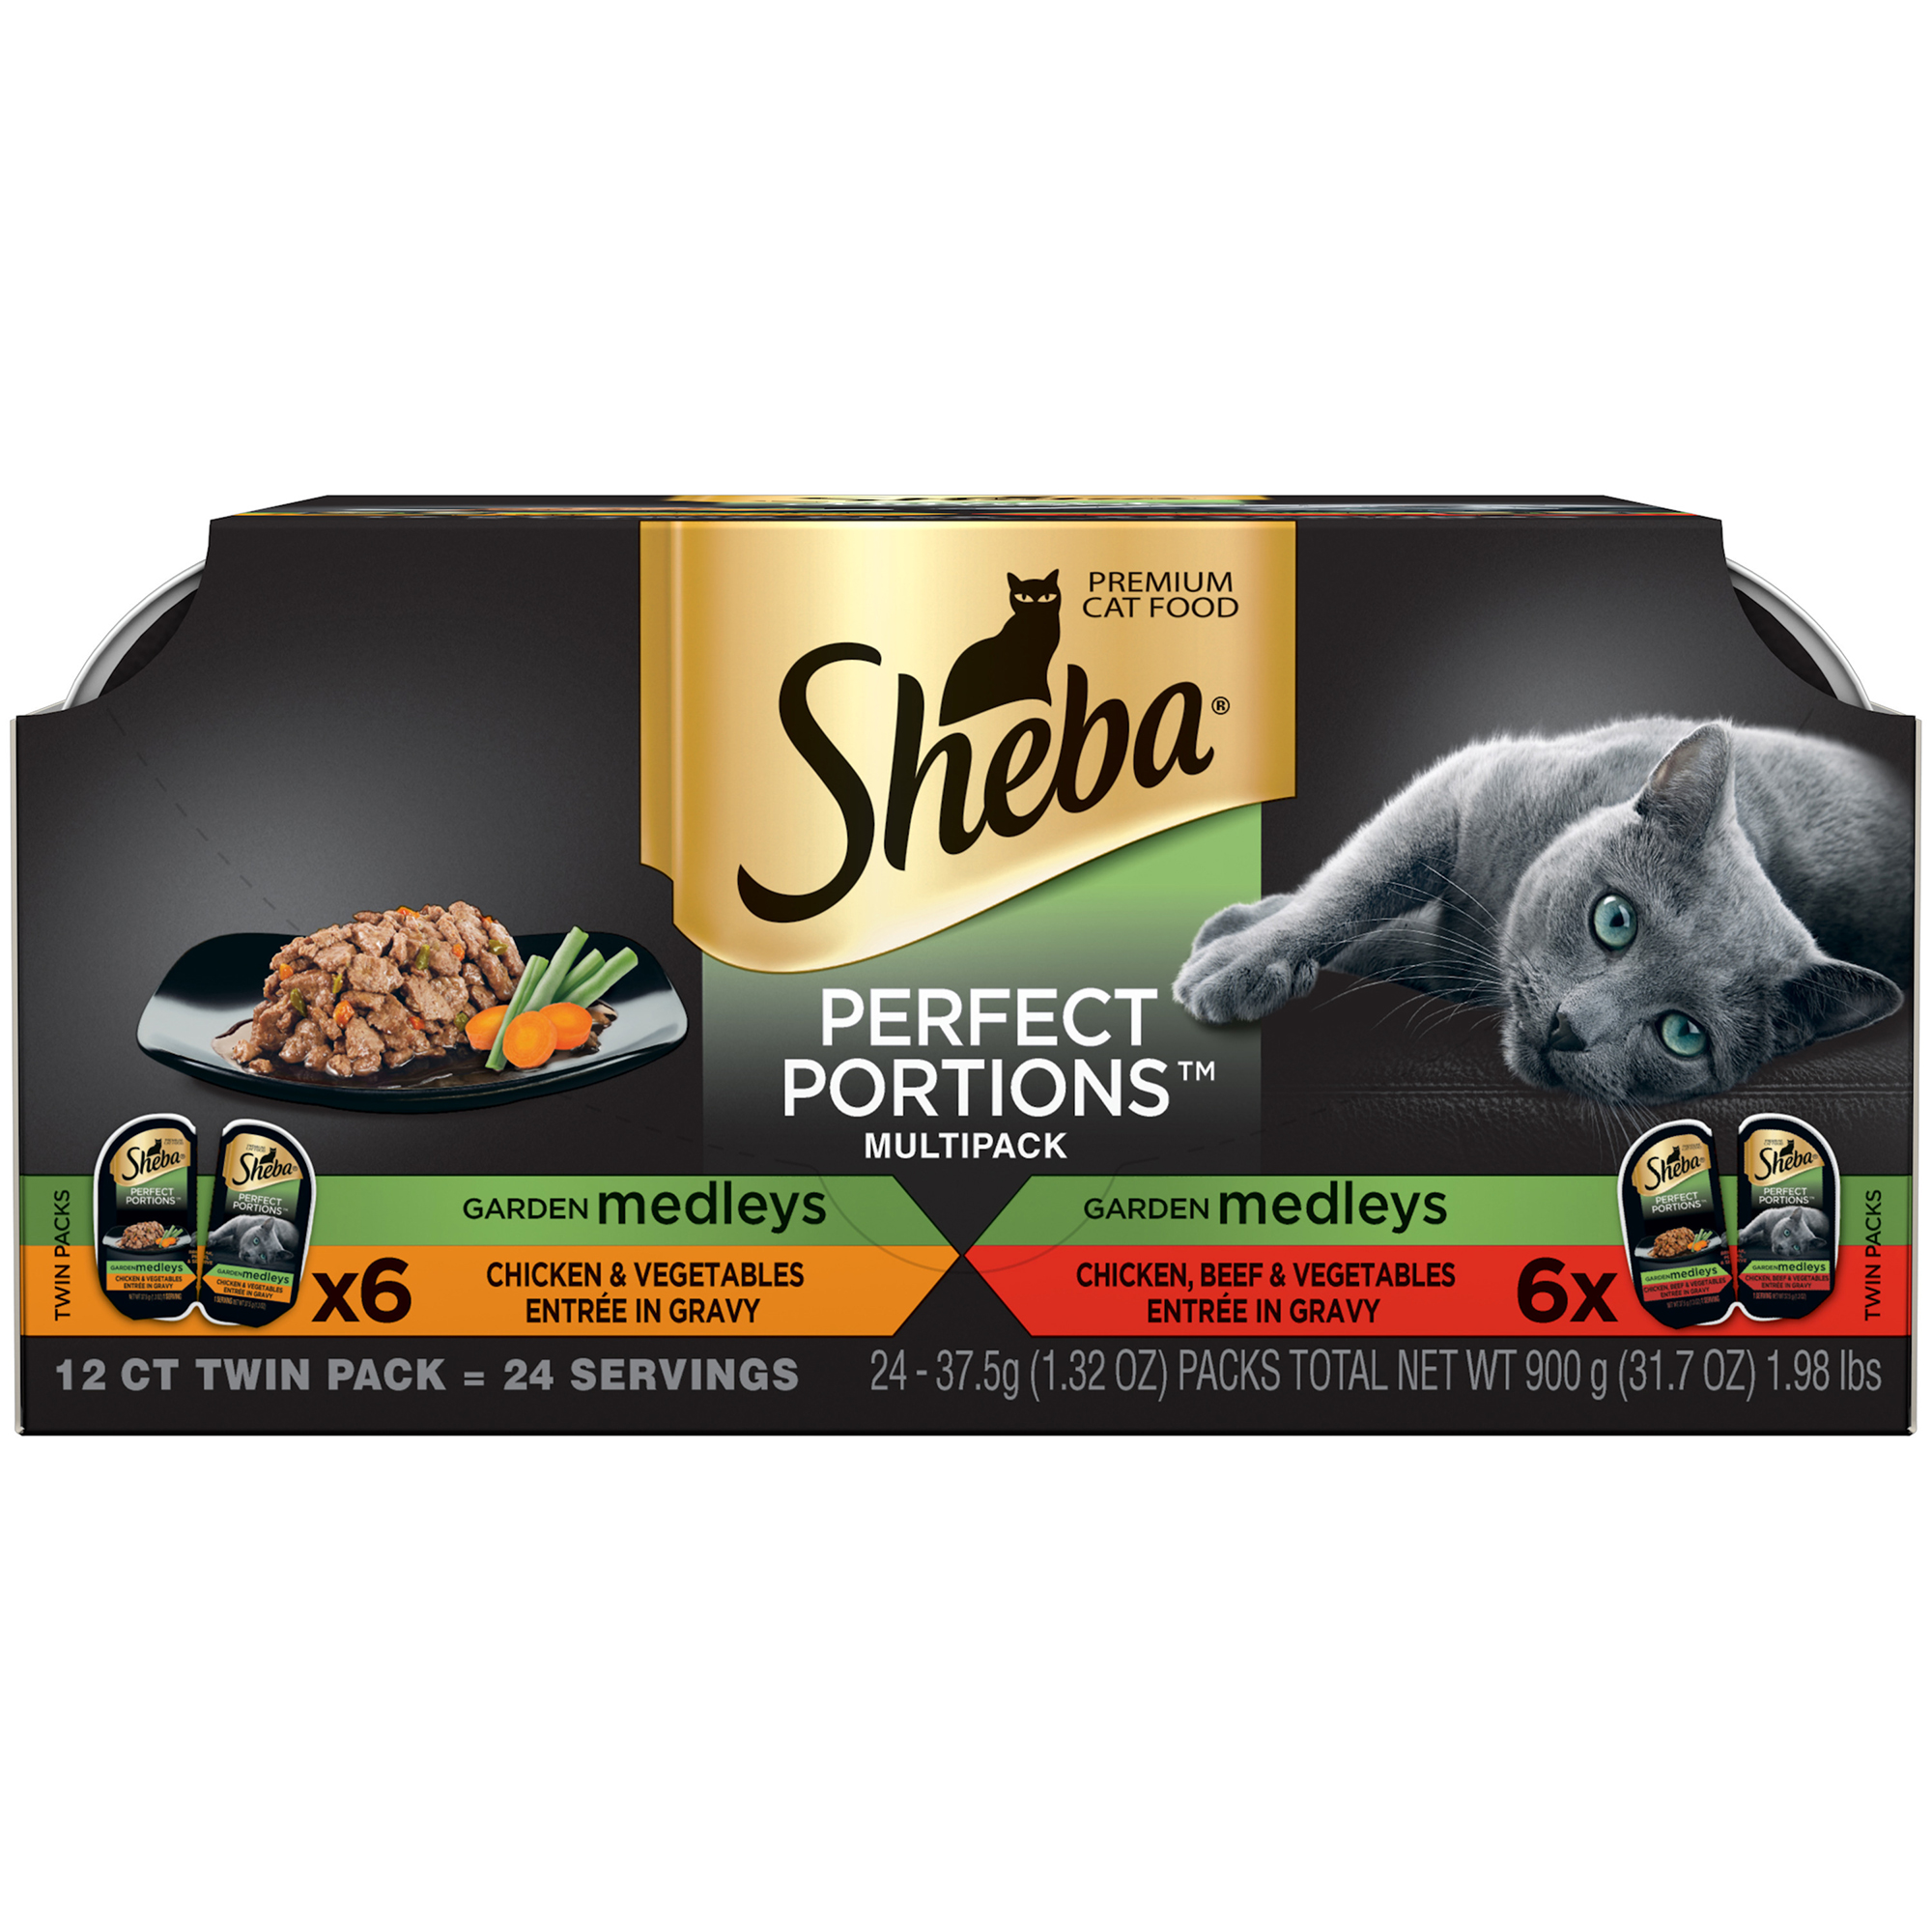 Sheba Perfect Portions Garden Medleys Wet Cat Food, Chicken And Vegetables & Chicken, Beef And Vegetables Multipack, 2.6 Oz (12 Twin Packs)